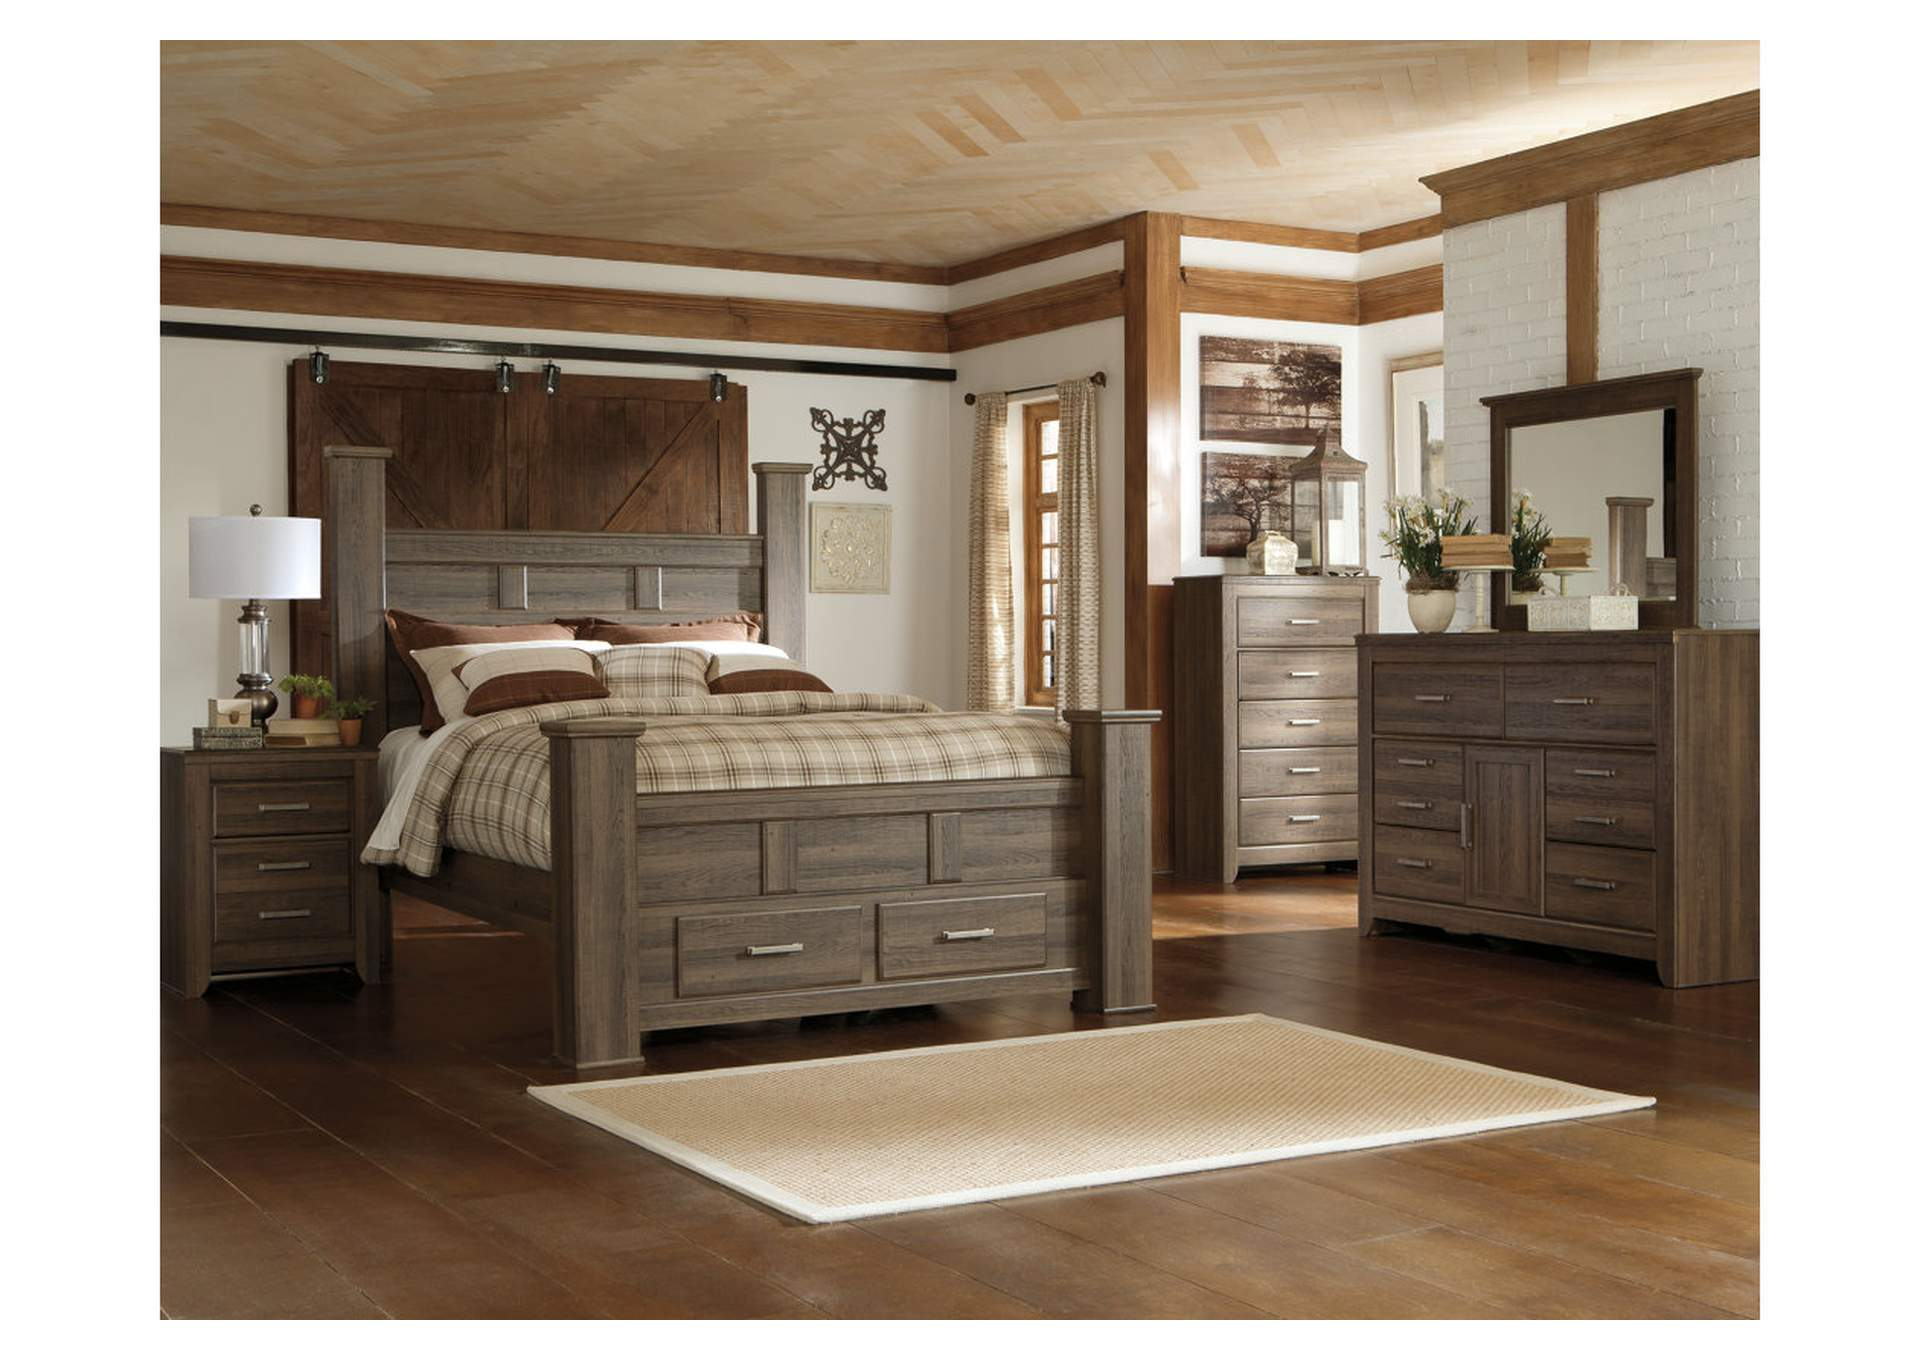 Juararo California King Poster Storage Bed w/Dresser, Mirror & Drawer Chest,Signature Design By Ashley